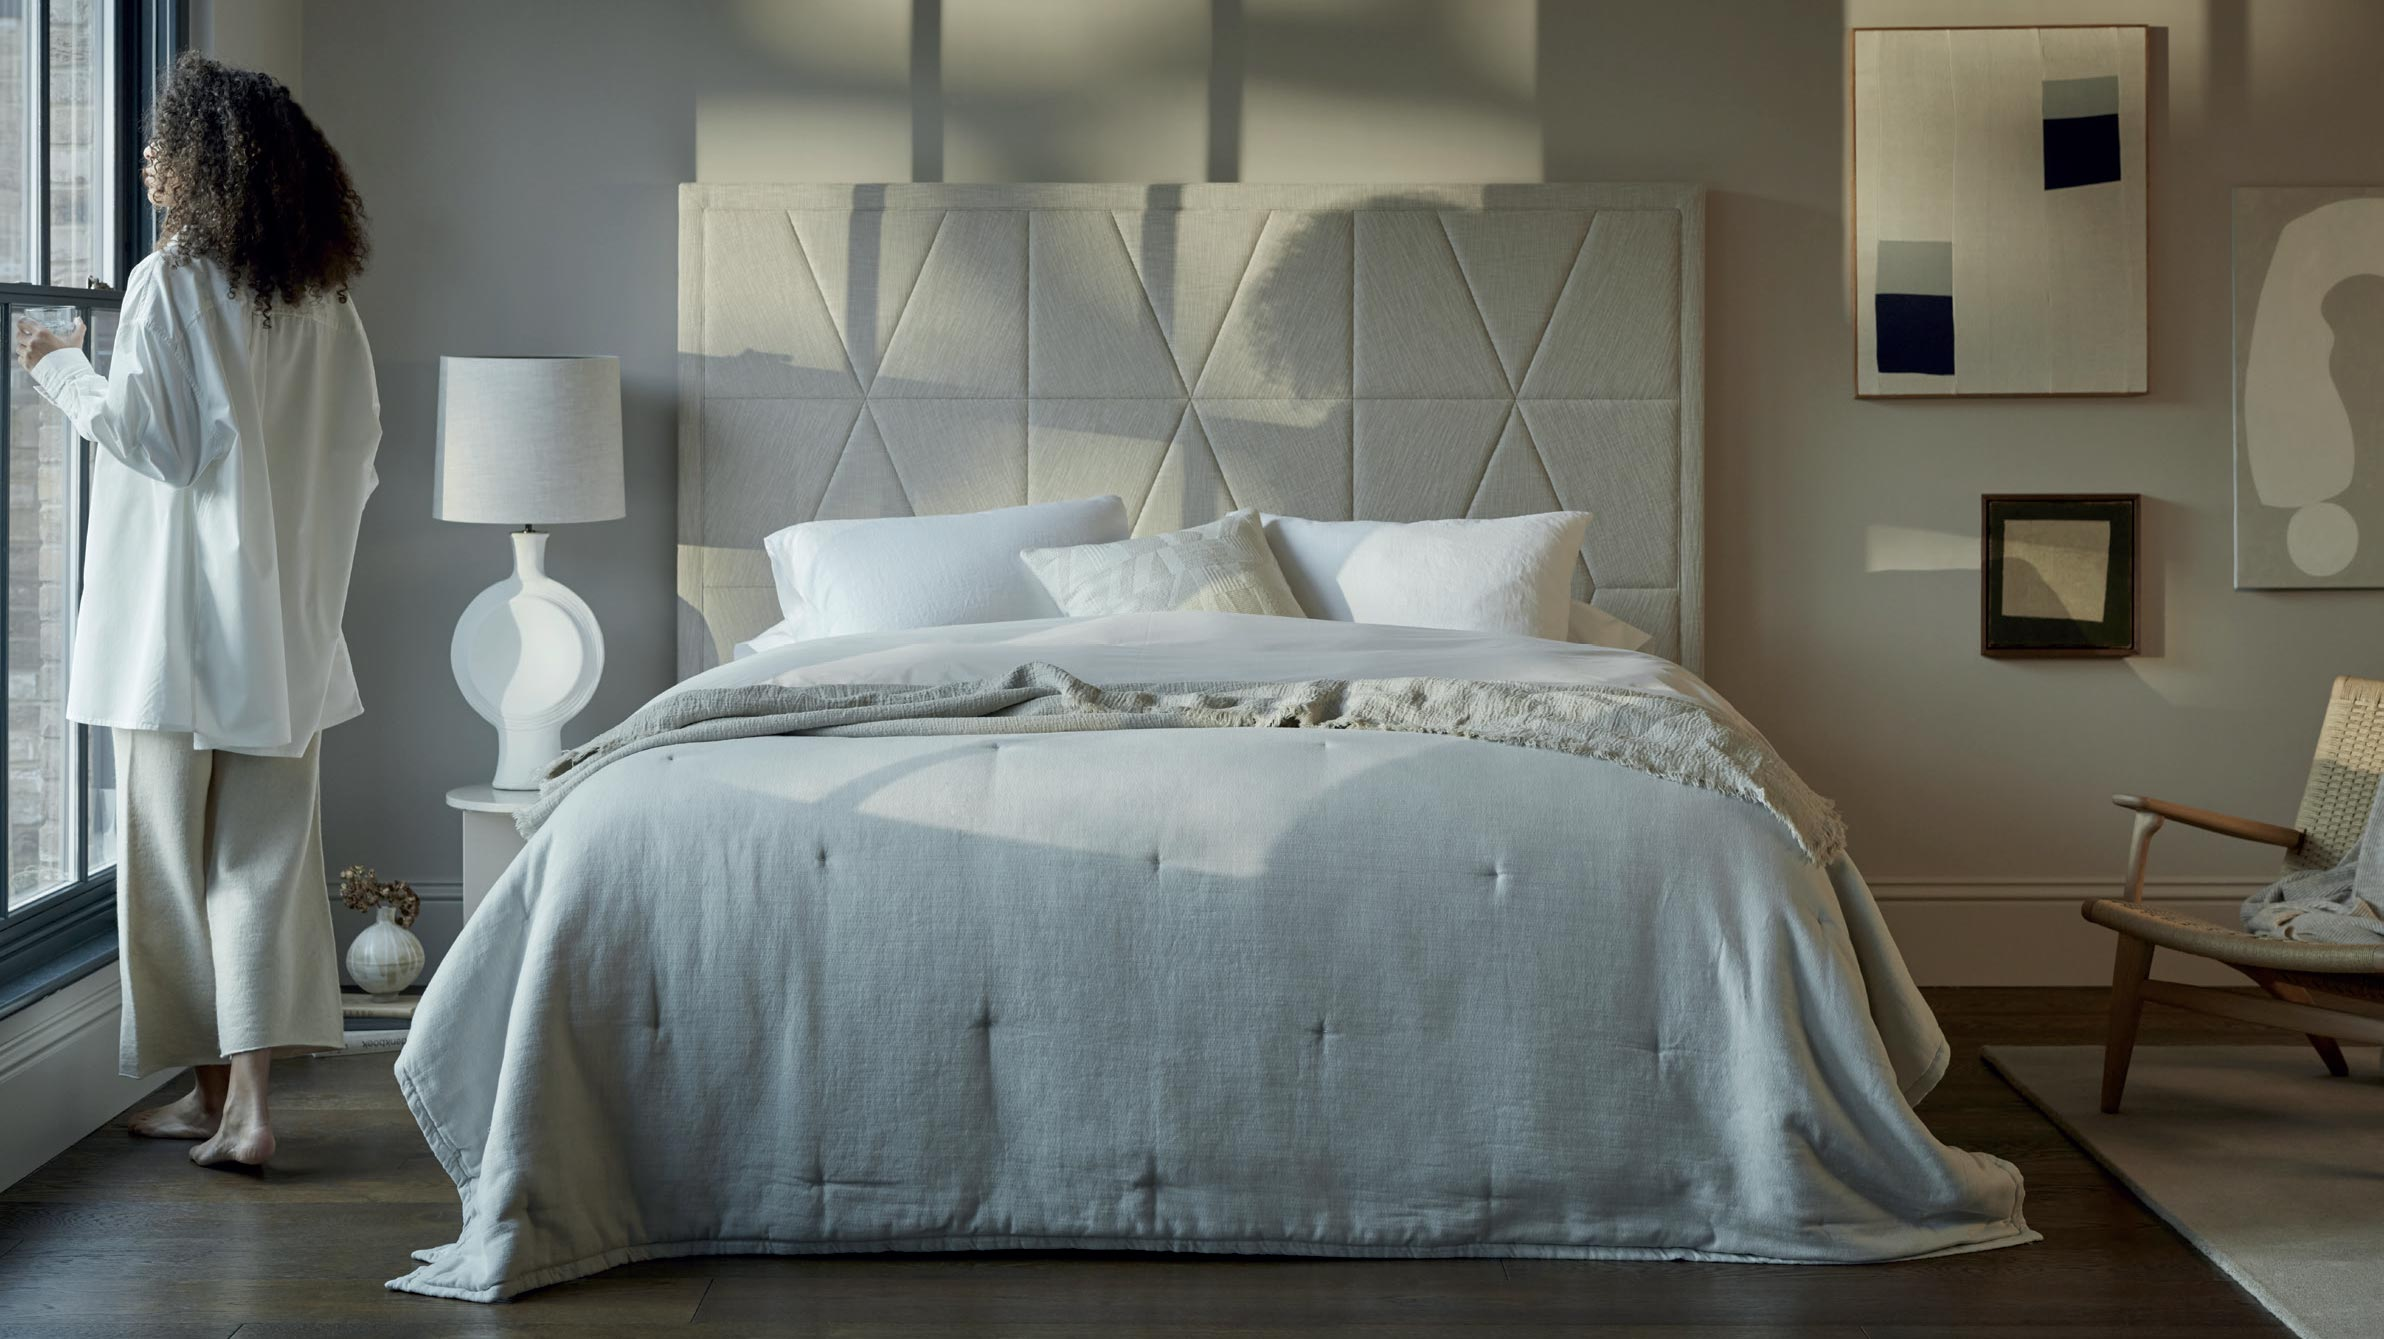 Vispring luxury beds from the sleep luxurry bed store in santana row